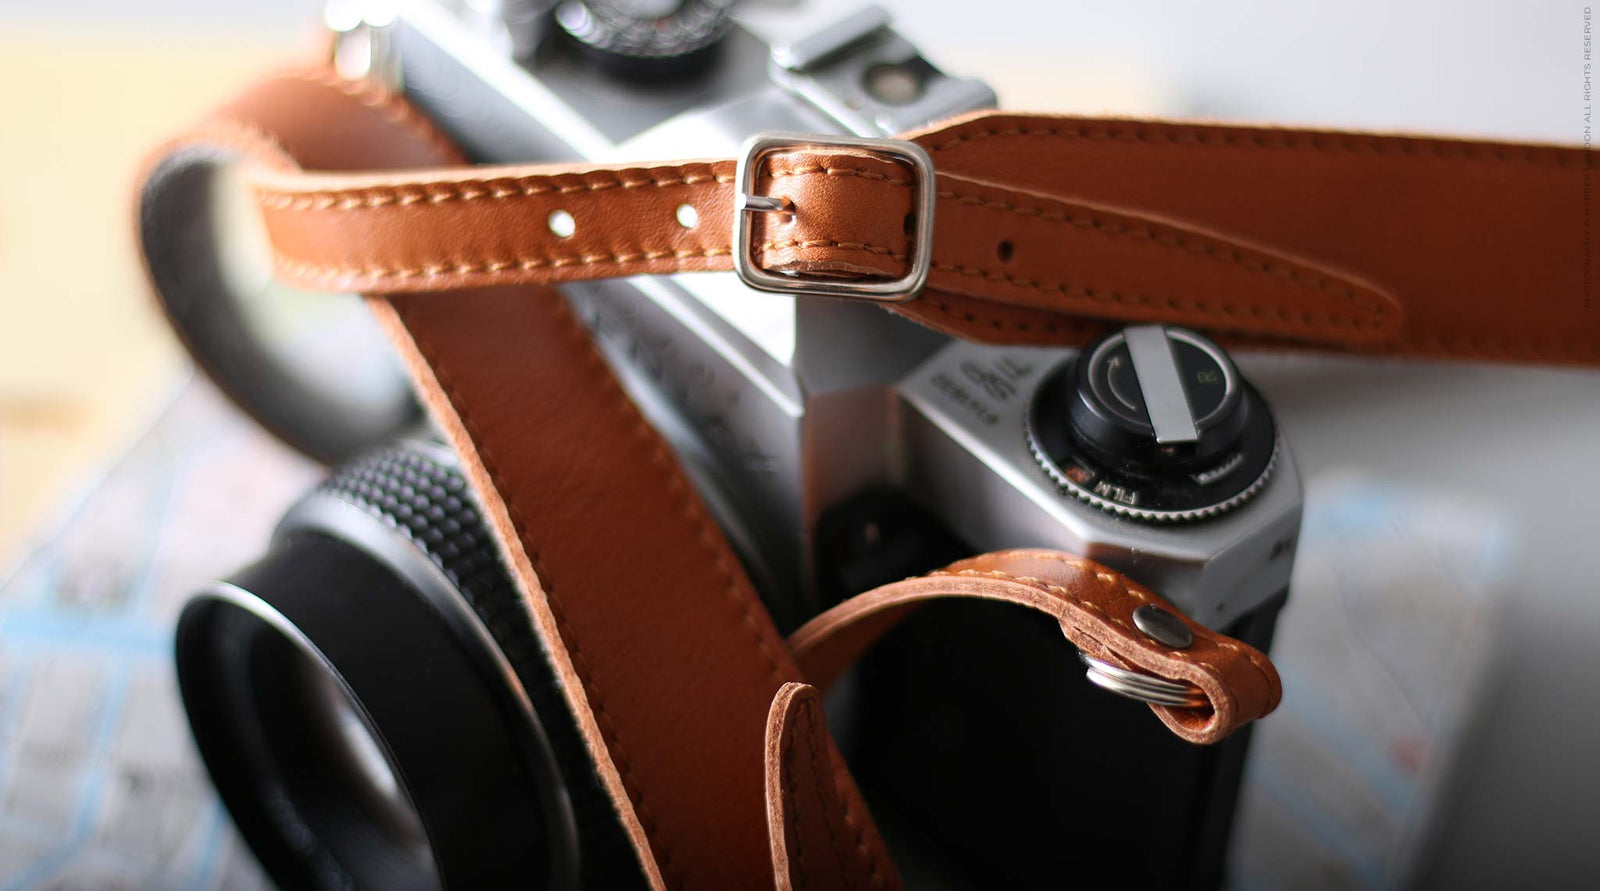 Adjustable Leather & Felt Camera Strap for DSLR Cameras, Nikon, Leica, Pentax, SLR. Harber London. DSLR Camera strap